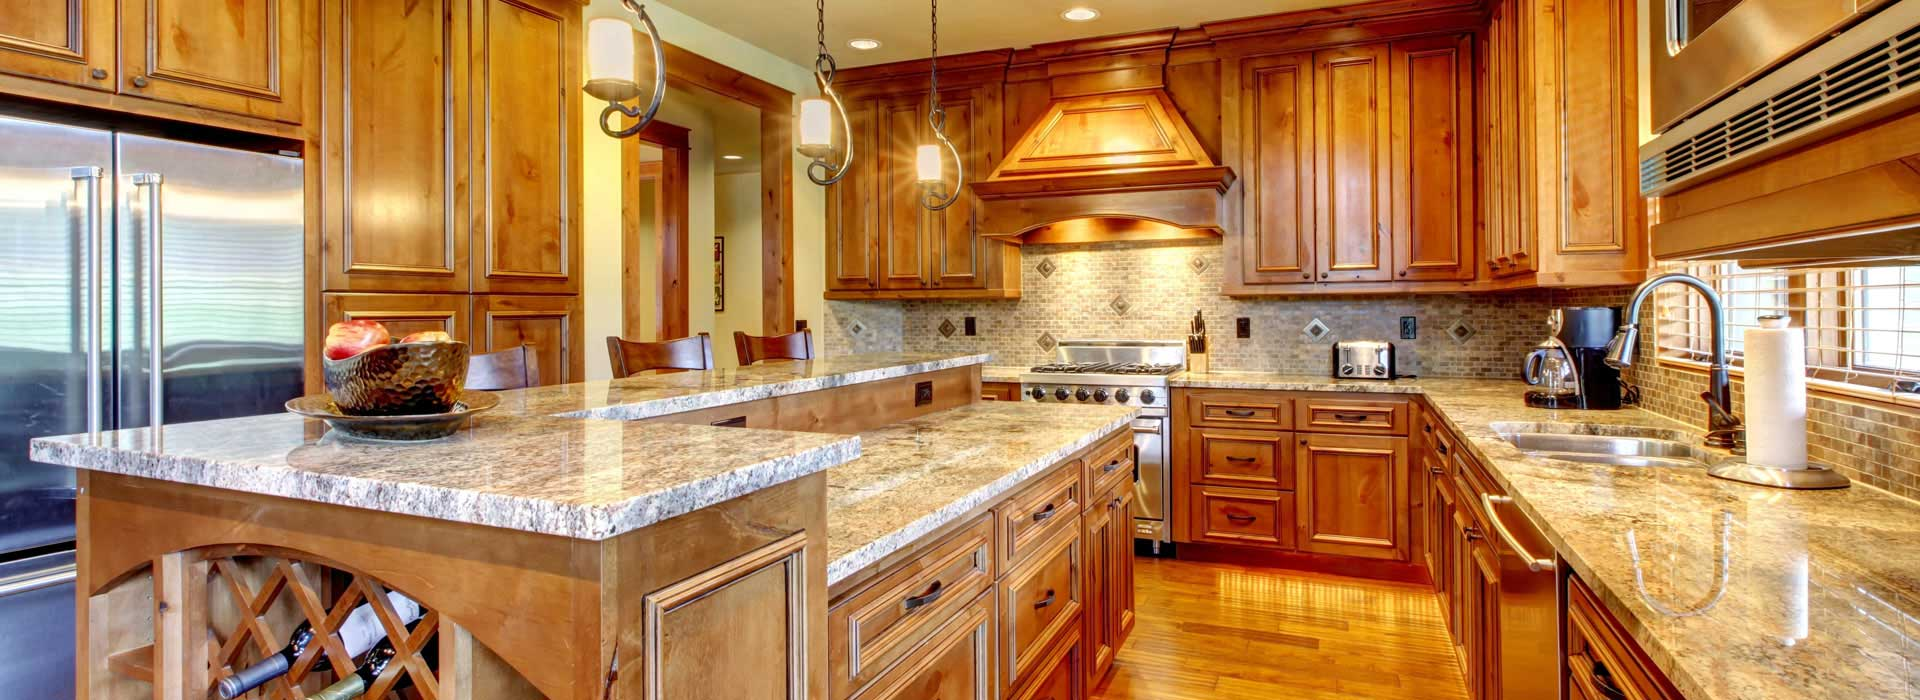 Kitchen Cabinets Jamaica new look kitchen cabinet refacing